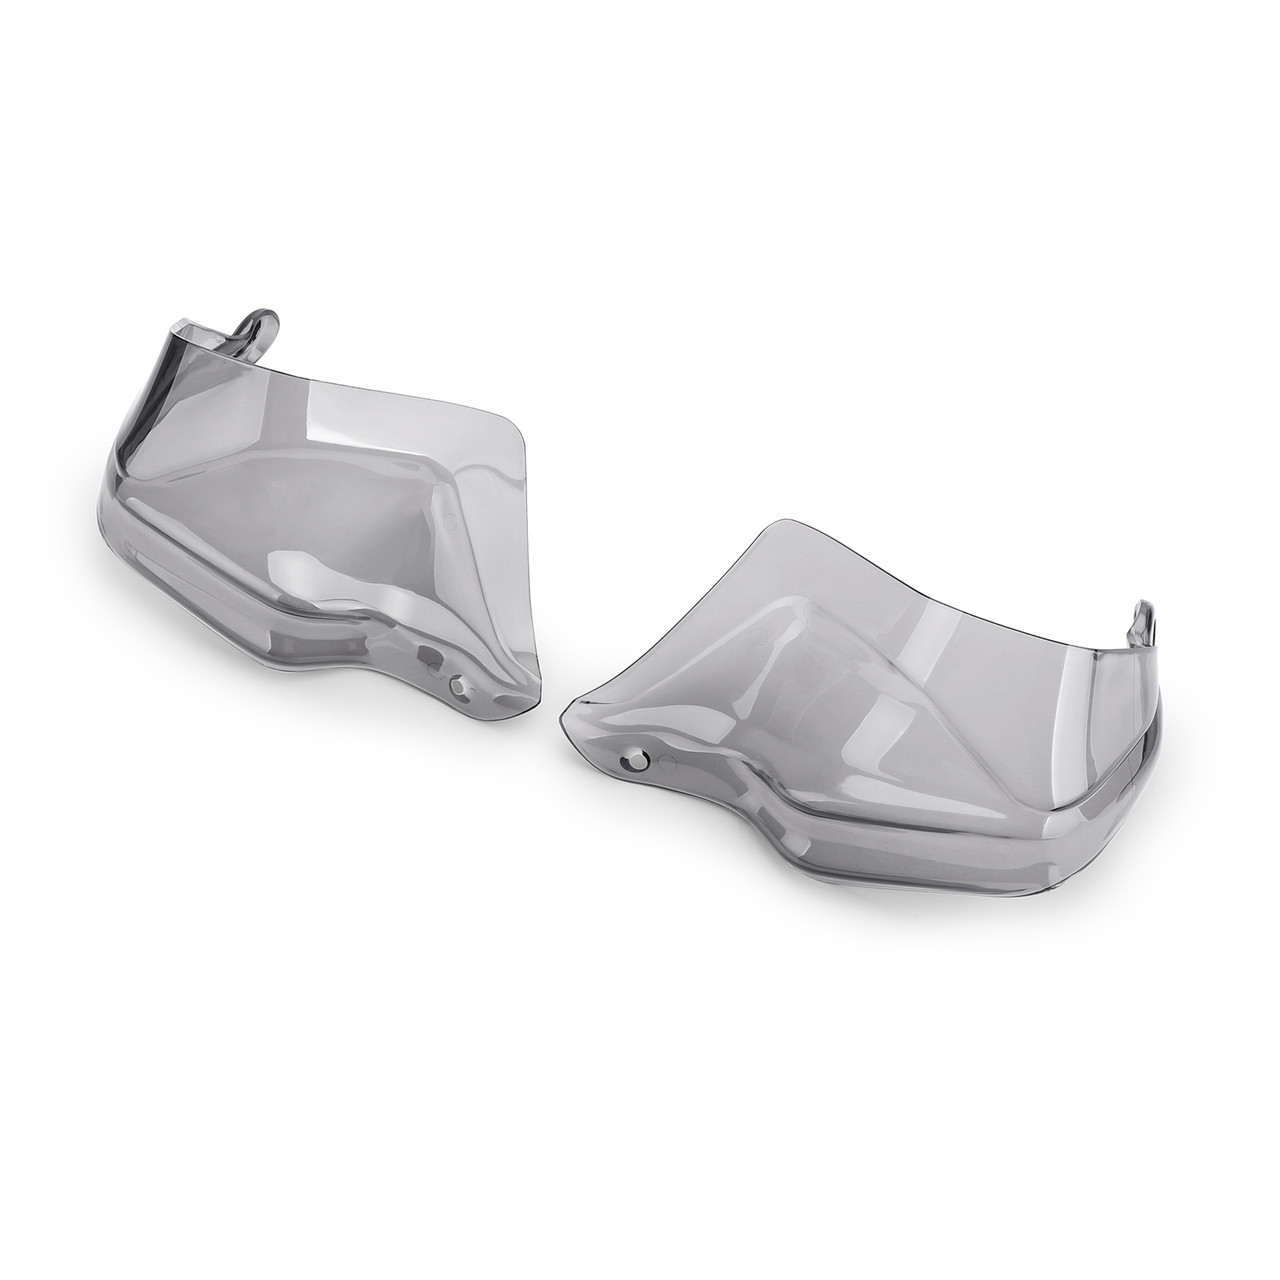 ABS Hand Guard Handguards Protector For BMW K33 R nineT Urban G/S 16-18 K49 S 1000 XR 14-18 K75 F 800 GS Adventure 12-17 Gray